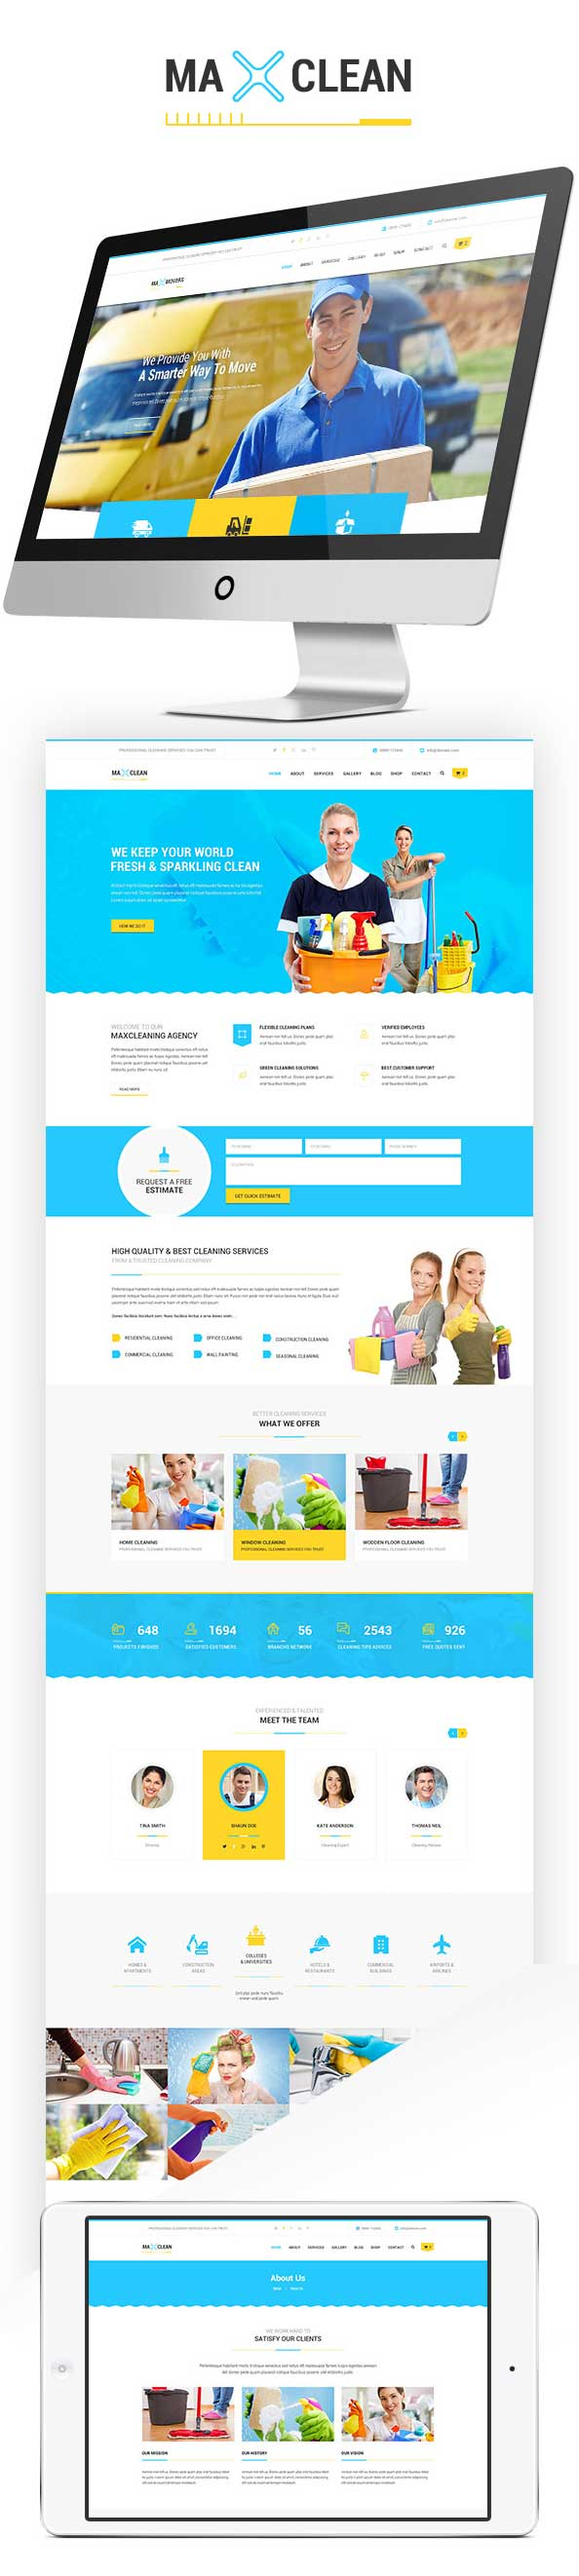 Max Cleaners & Movers - HTML Template - 1